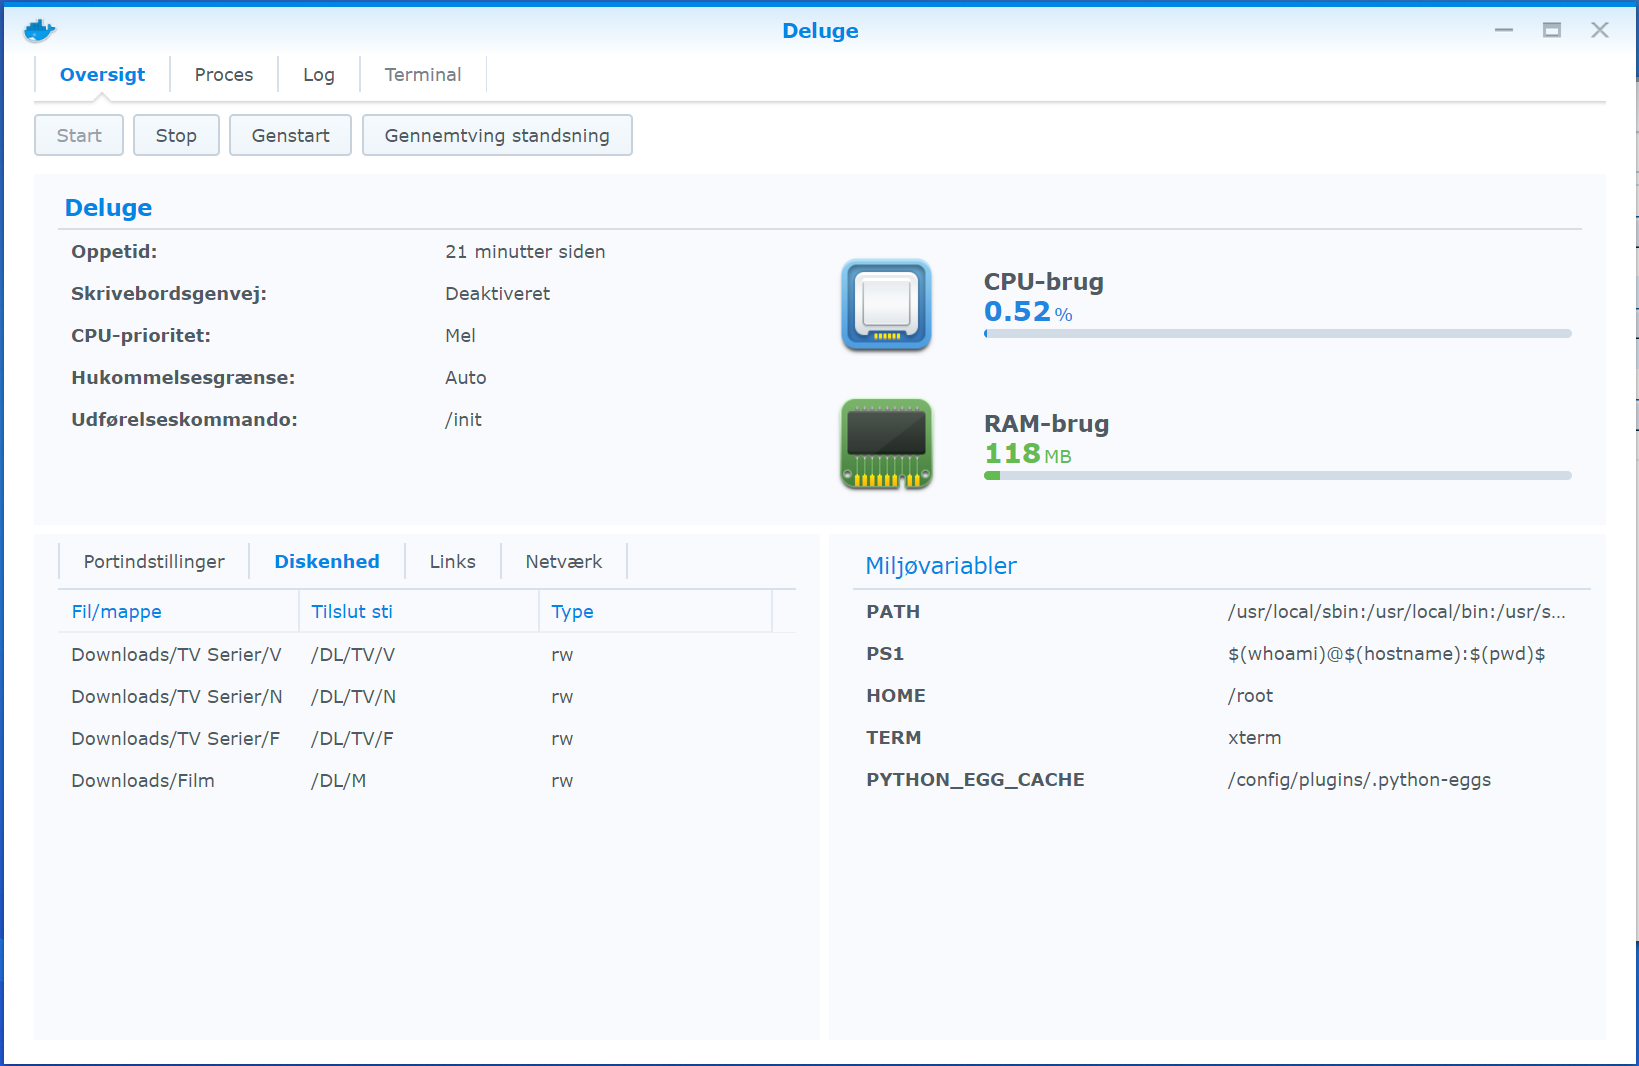 Synology LinuxServer/Deluge - Permission Denied · Issue #41